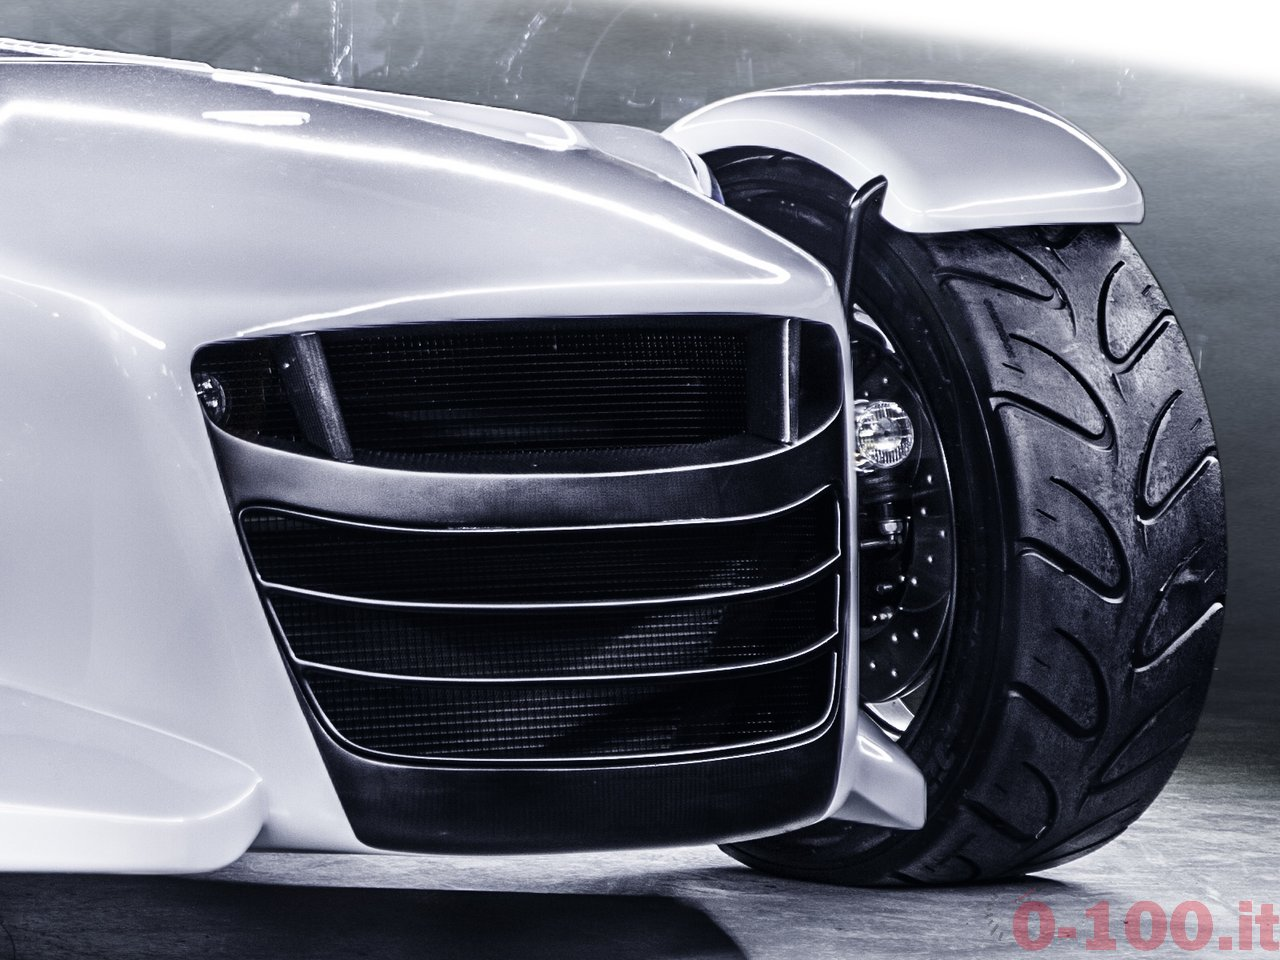 donkervoort-d8-gto-bilster-berg-edition-0-100_10